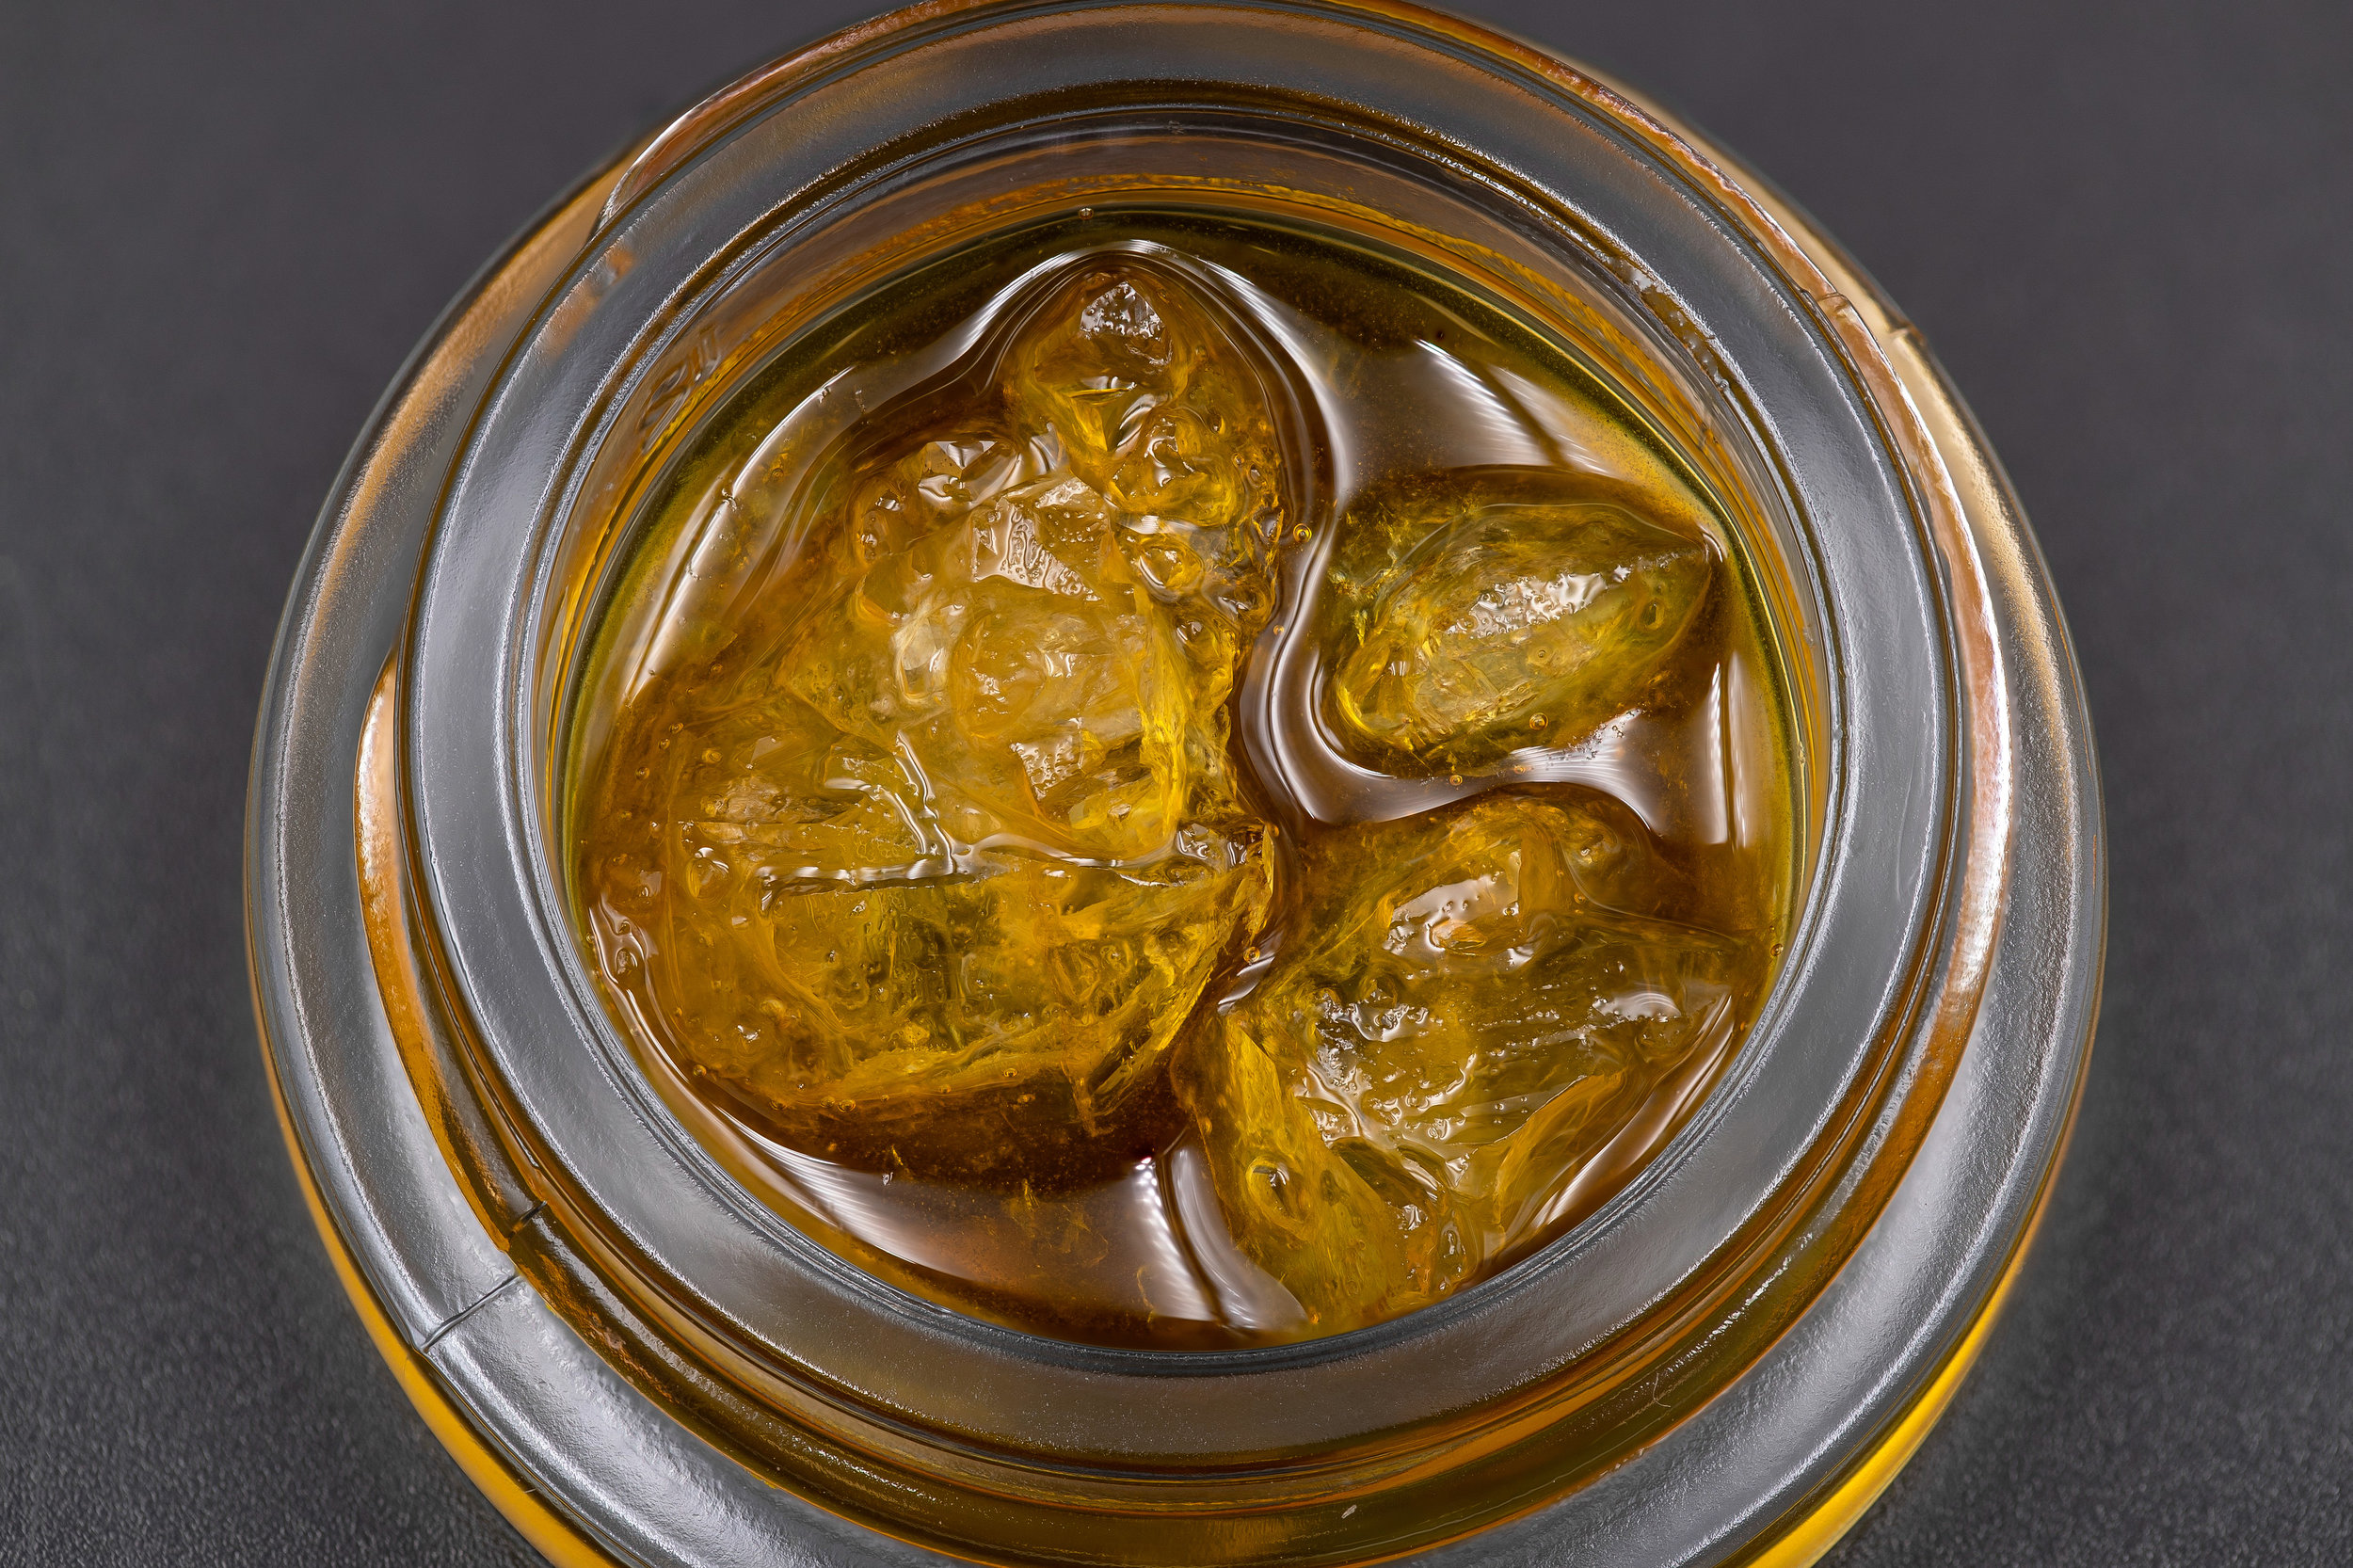 Live resin BallerJars - GSC, Animal Cookies, and GMO 3.5g jars selling at $150